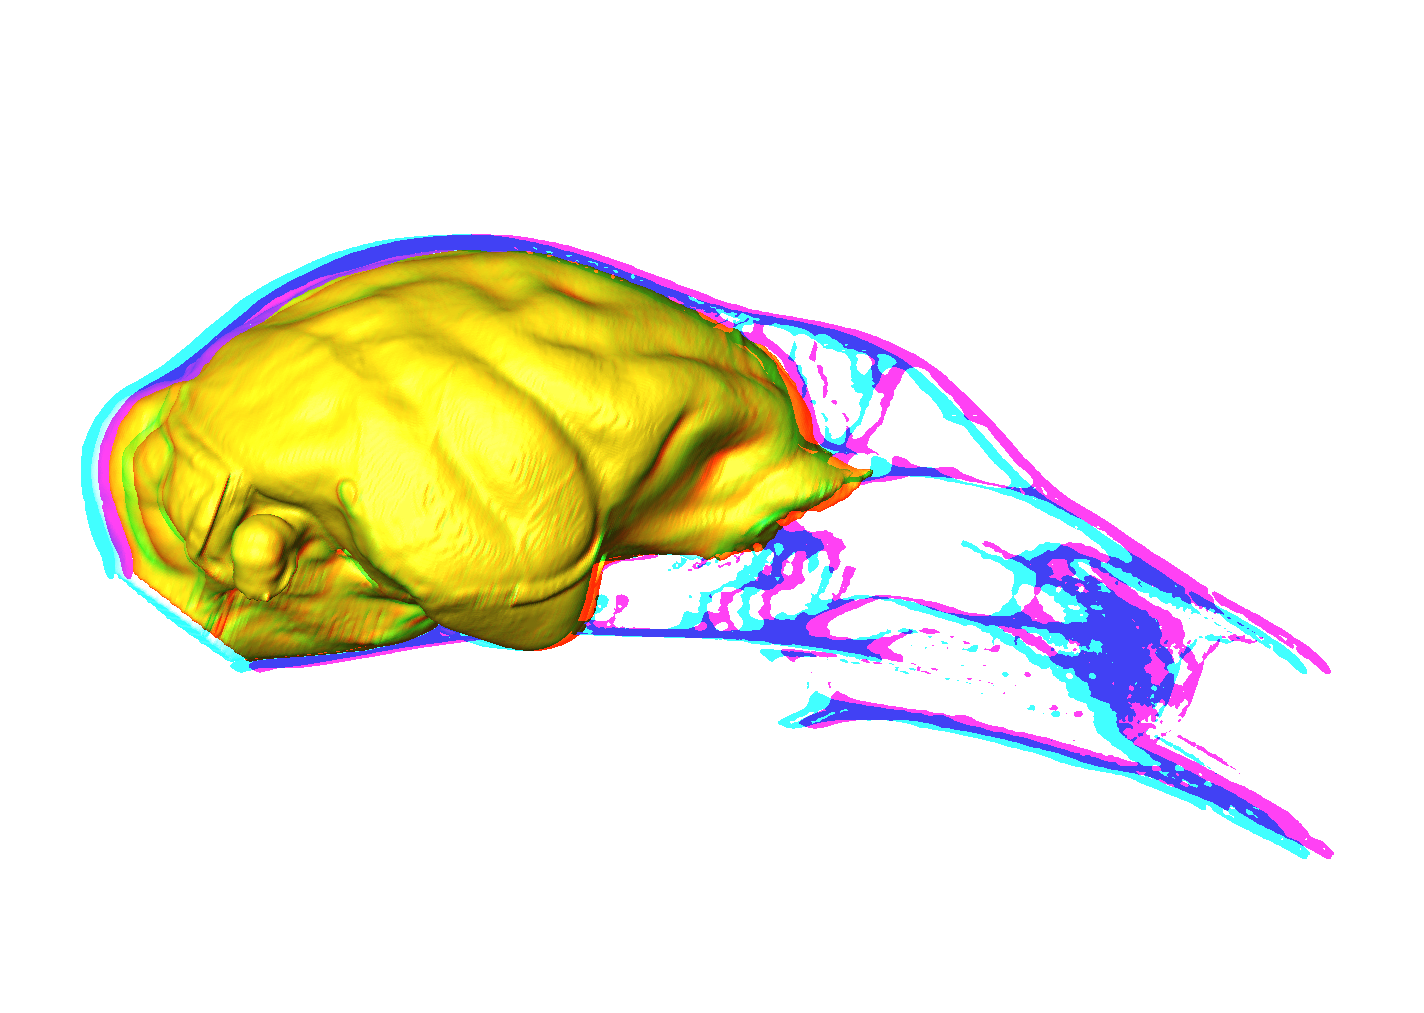 3D rendering of lemur endocast and associated midsagittal cranial tomorgraph